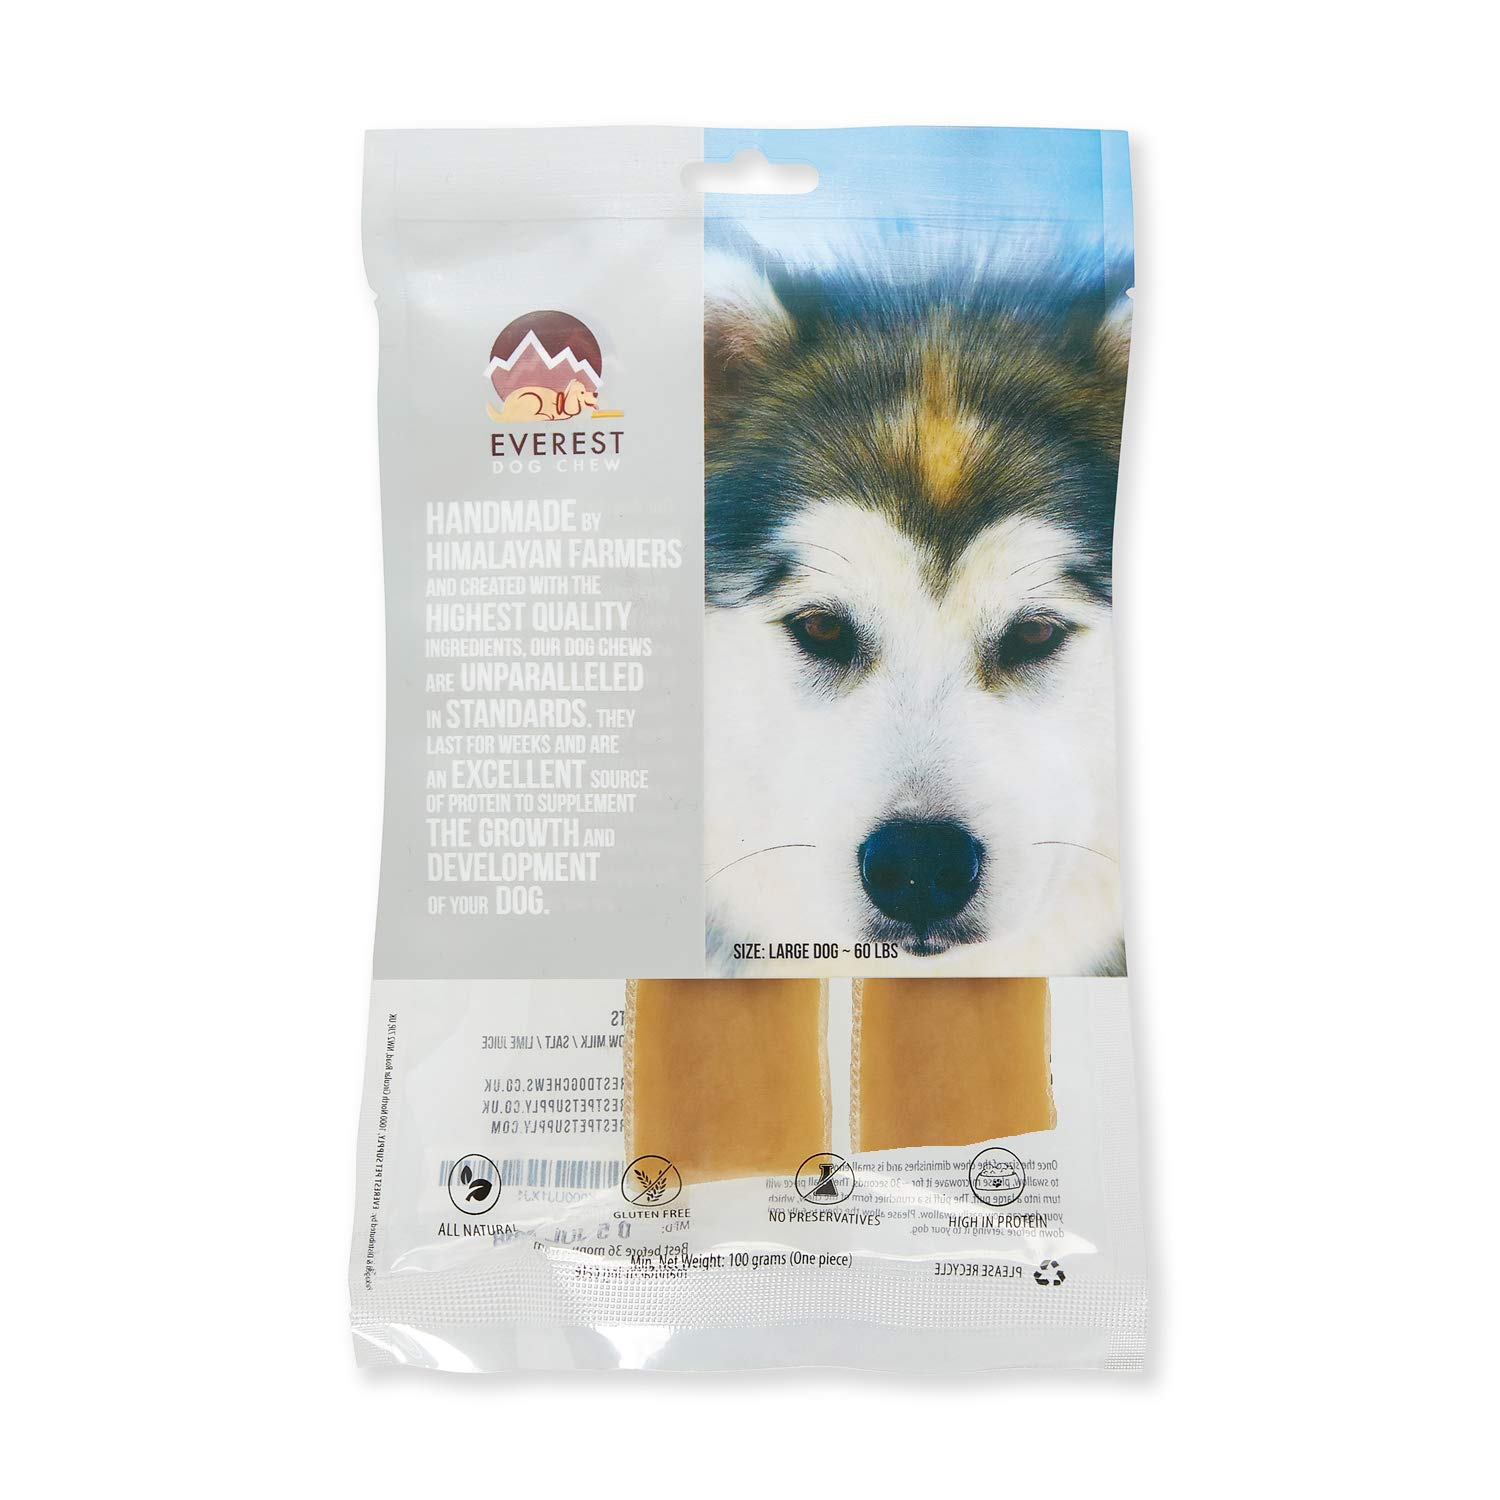 LARGE Yak Chew x 2 value pack, Everest Yak Chews (Large Dogs)